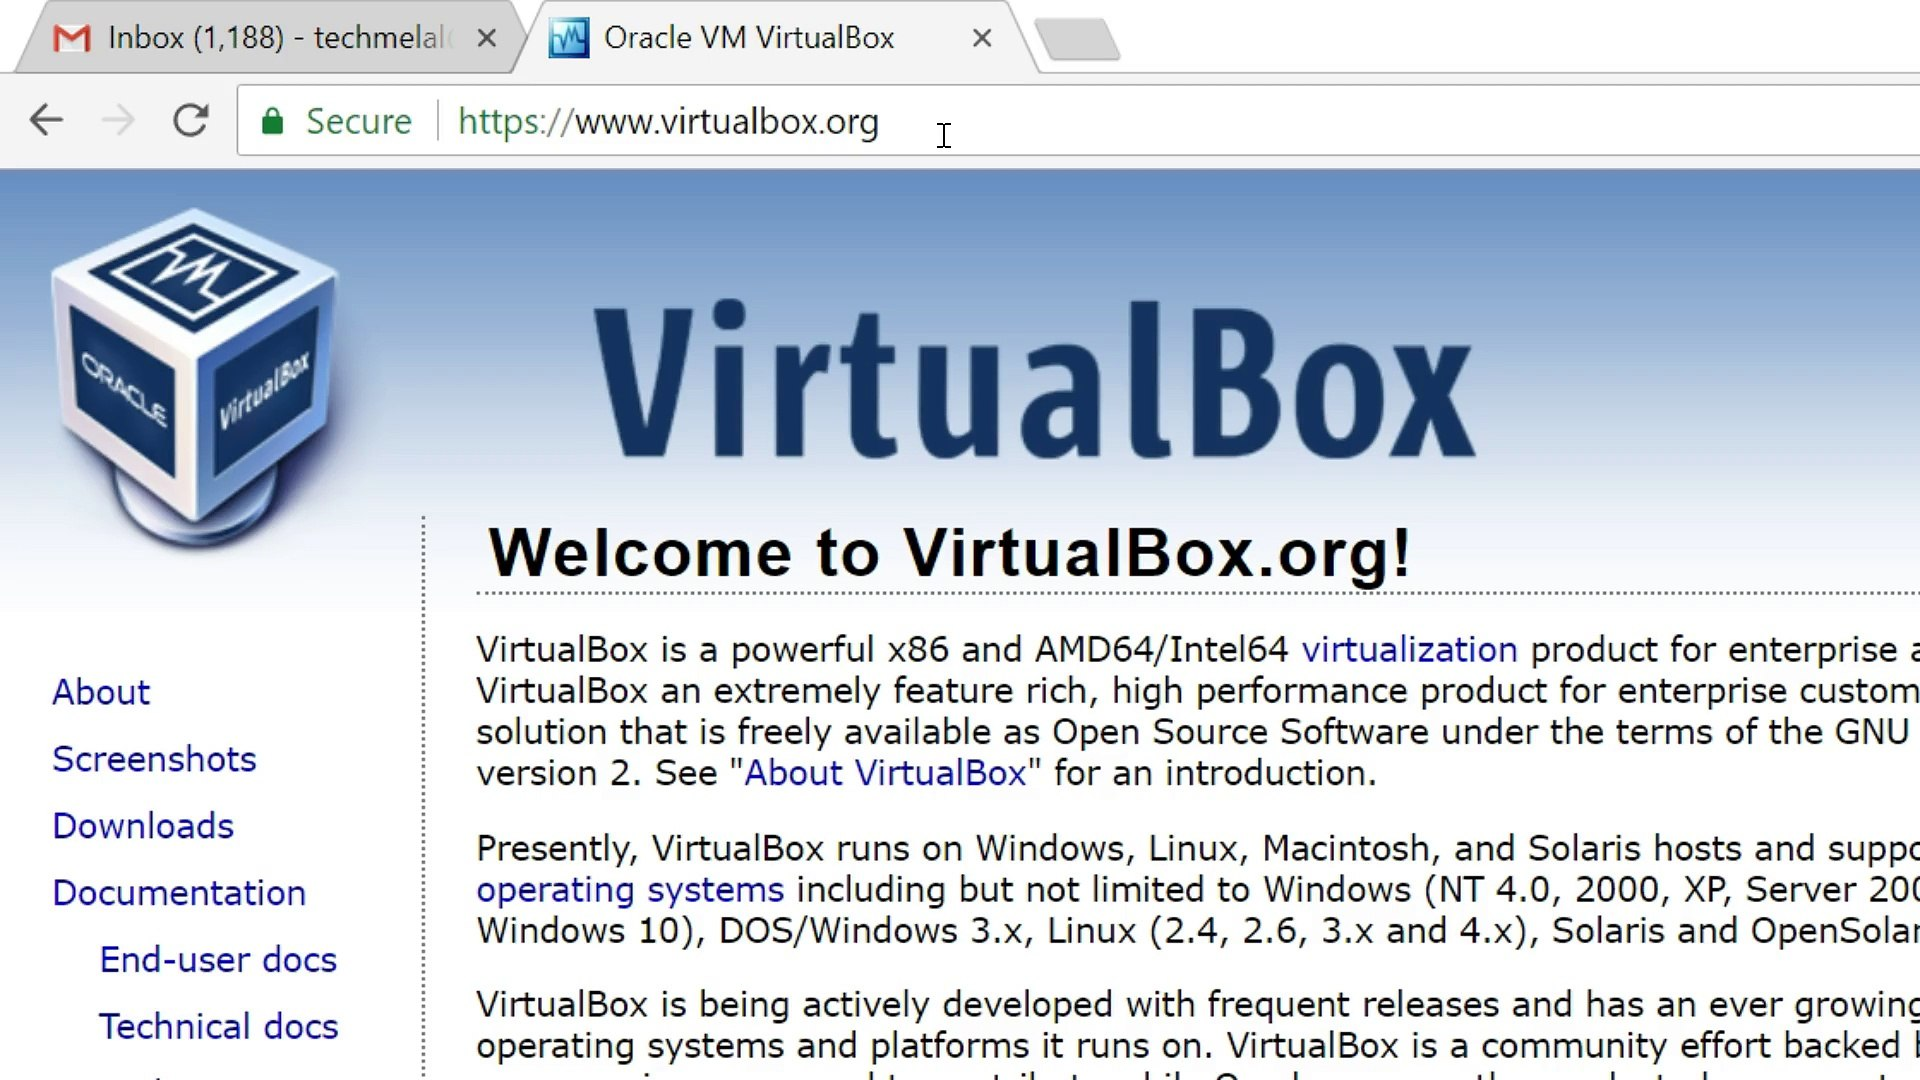 How to Download and Install VirtualBox in Windows 10 (2018)?